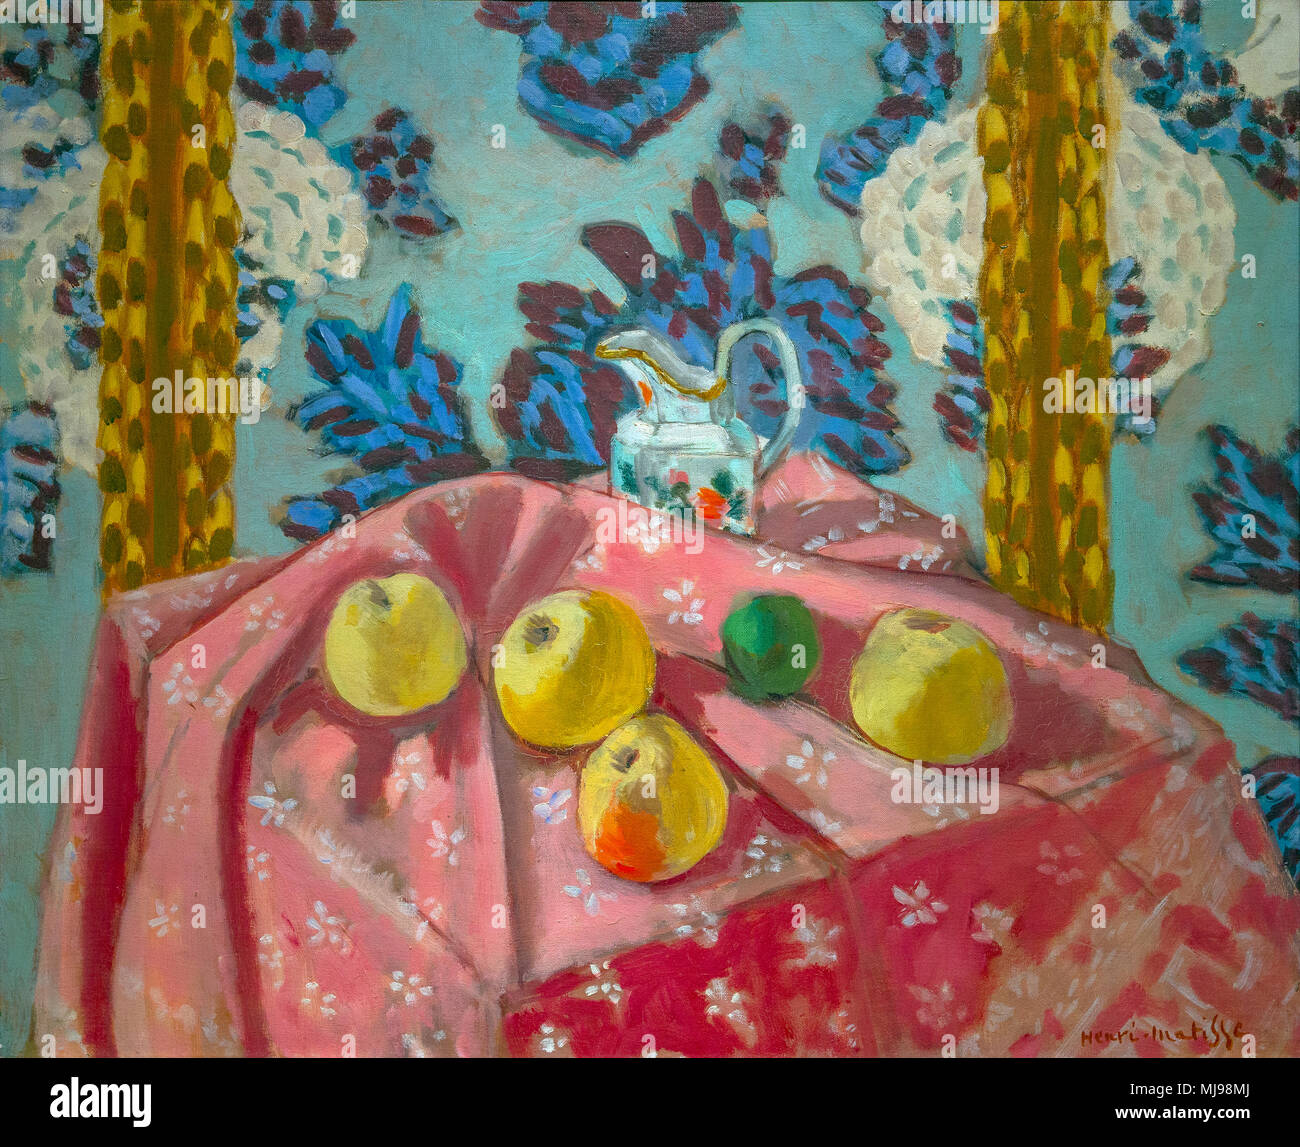 Still Life with Apples on a Pink Tablecloth, Henri Matisse, 1924, National Gallery of Art, Washington DC, USA, North America - Stock Image